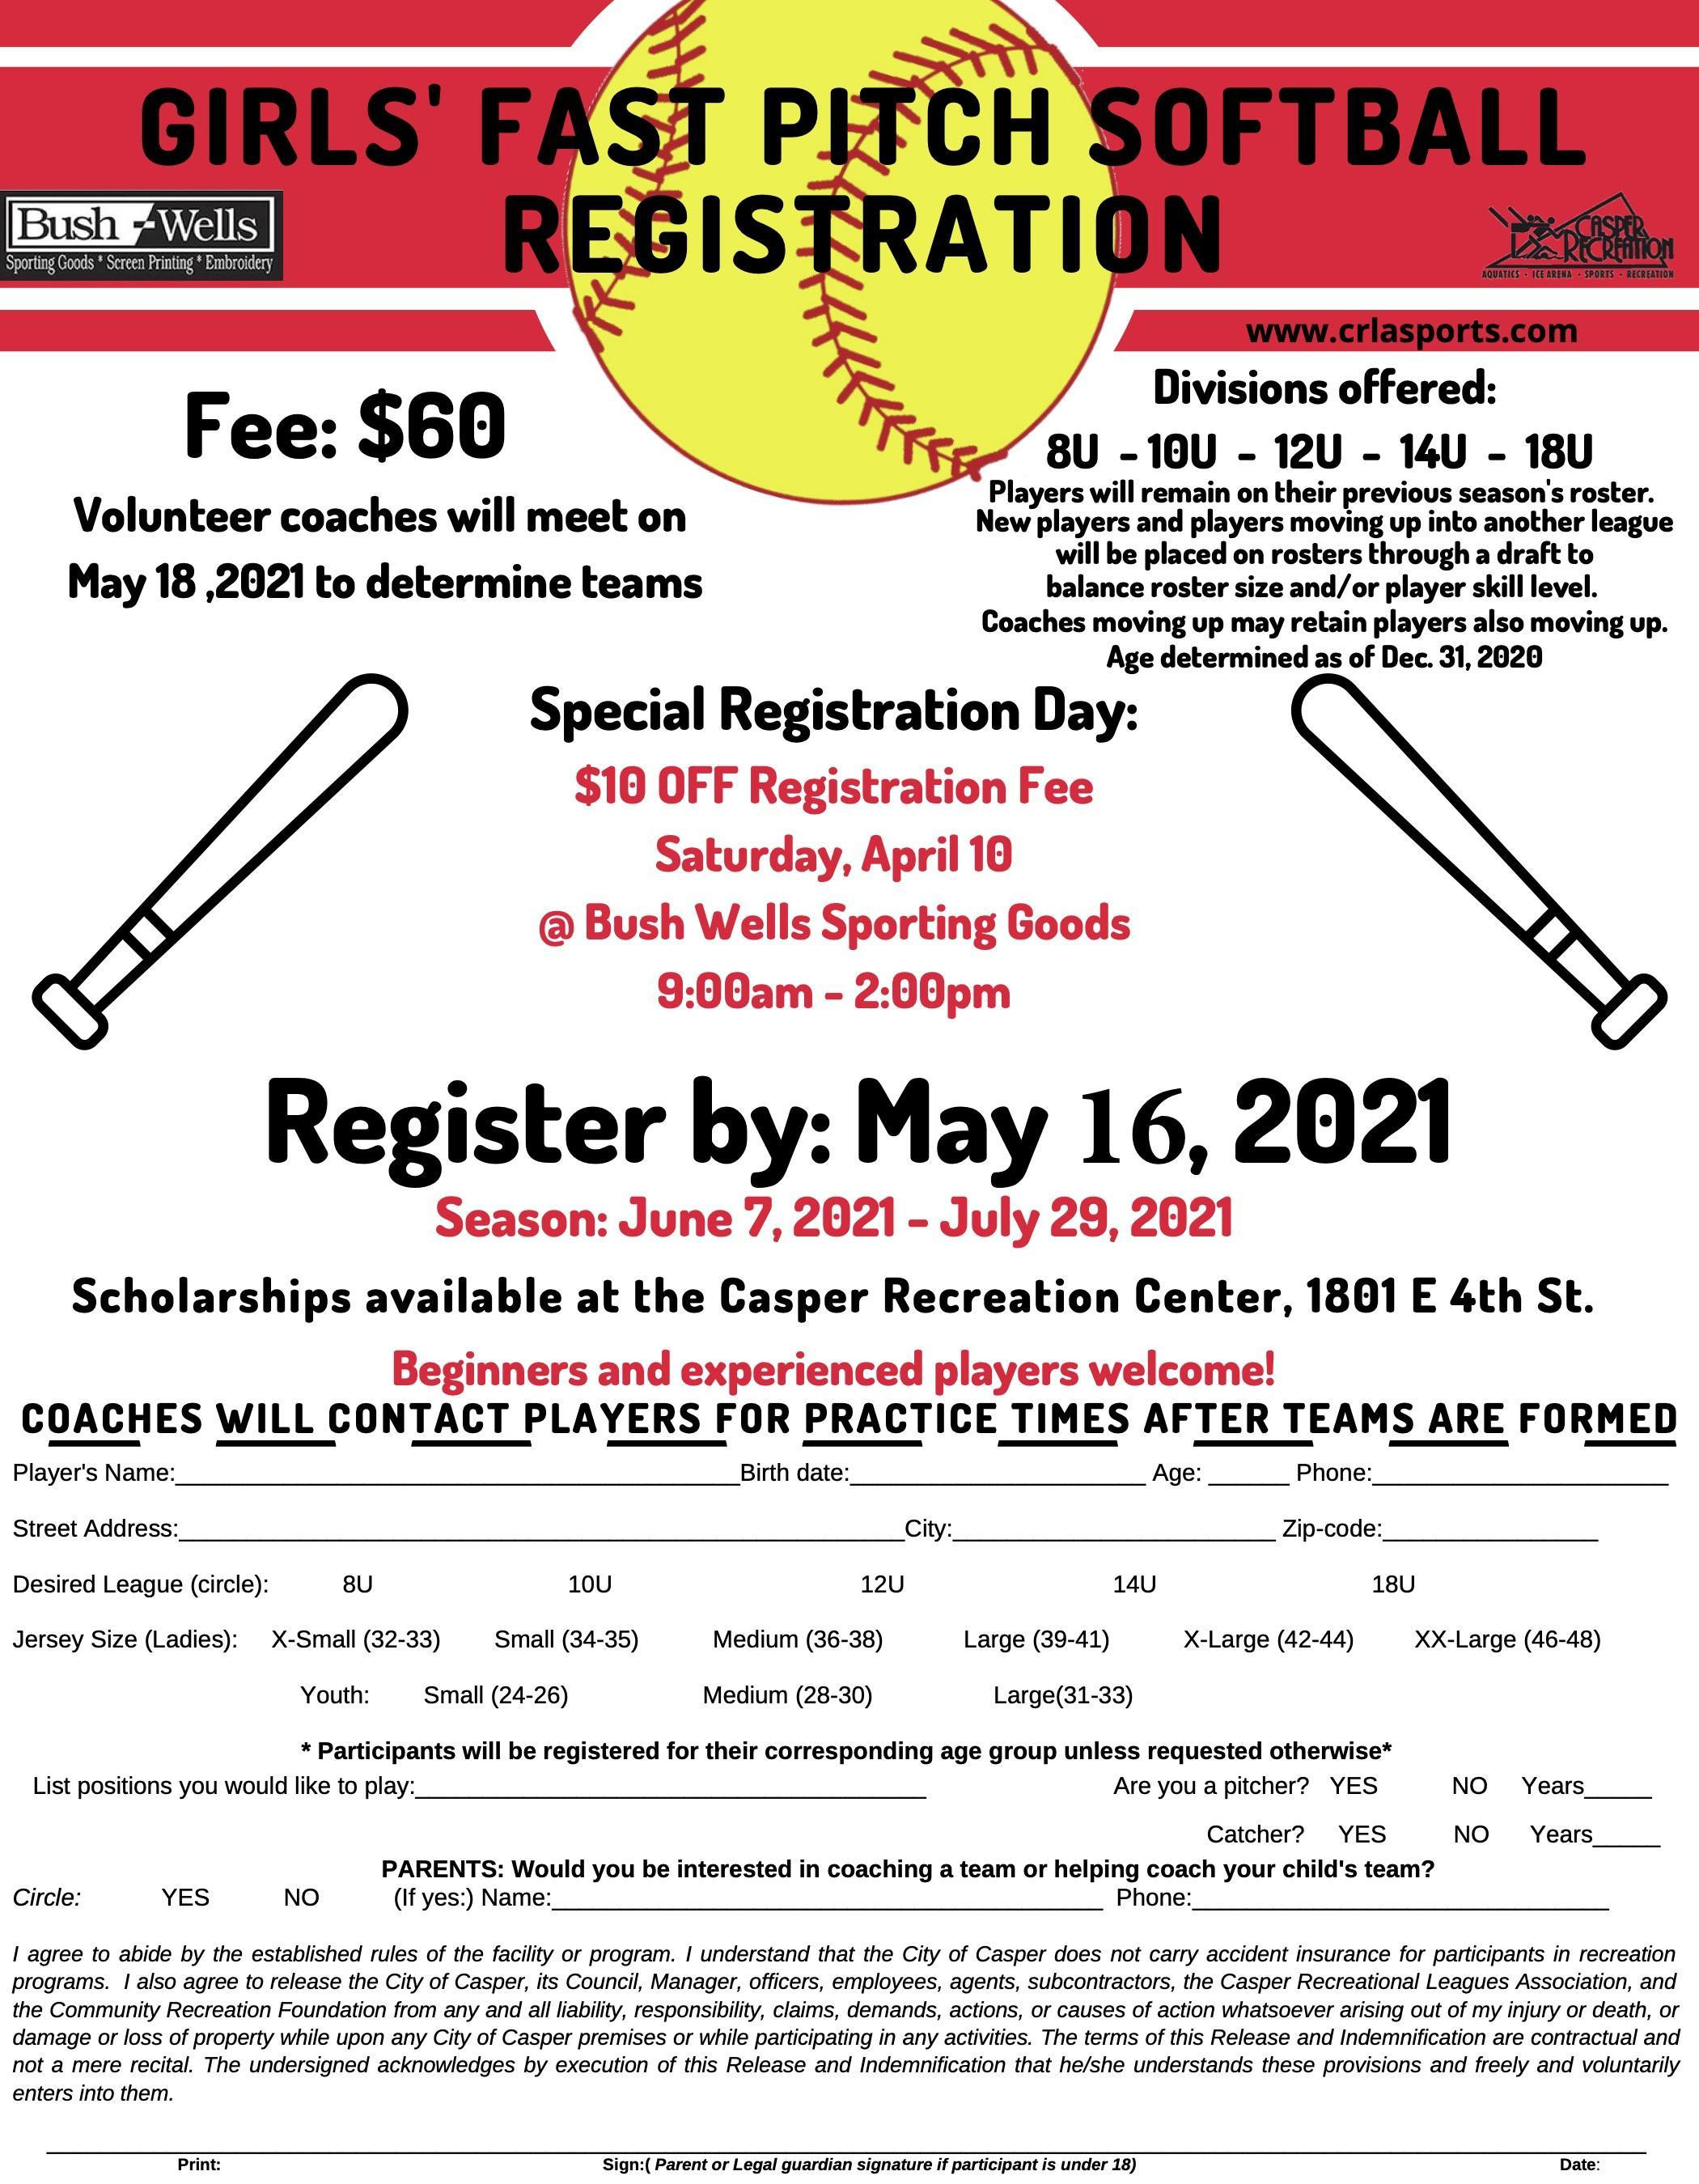 Girls Fast Pitch Softball Registration flyer